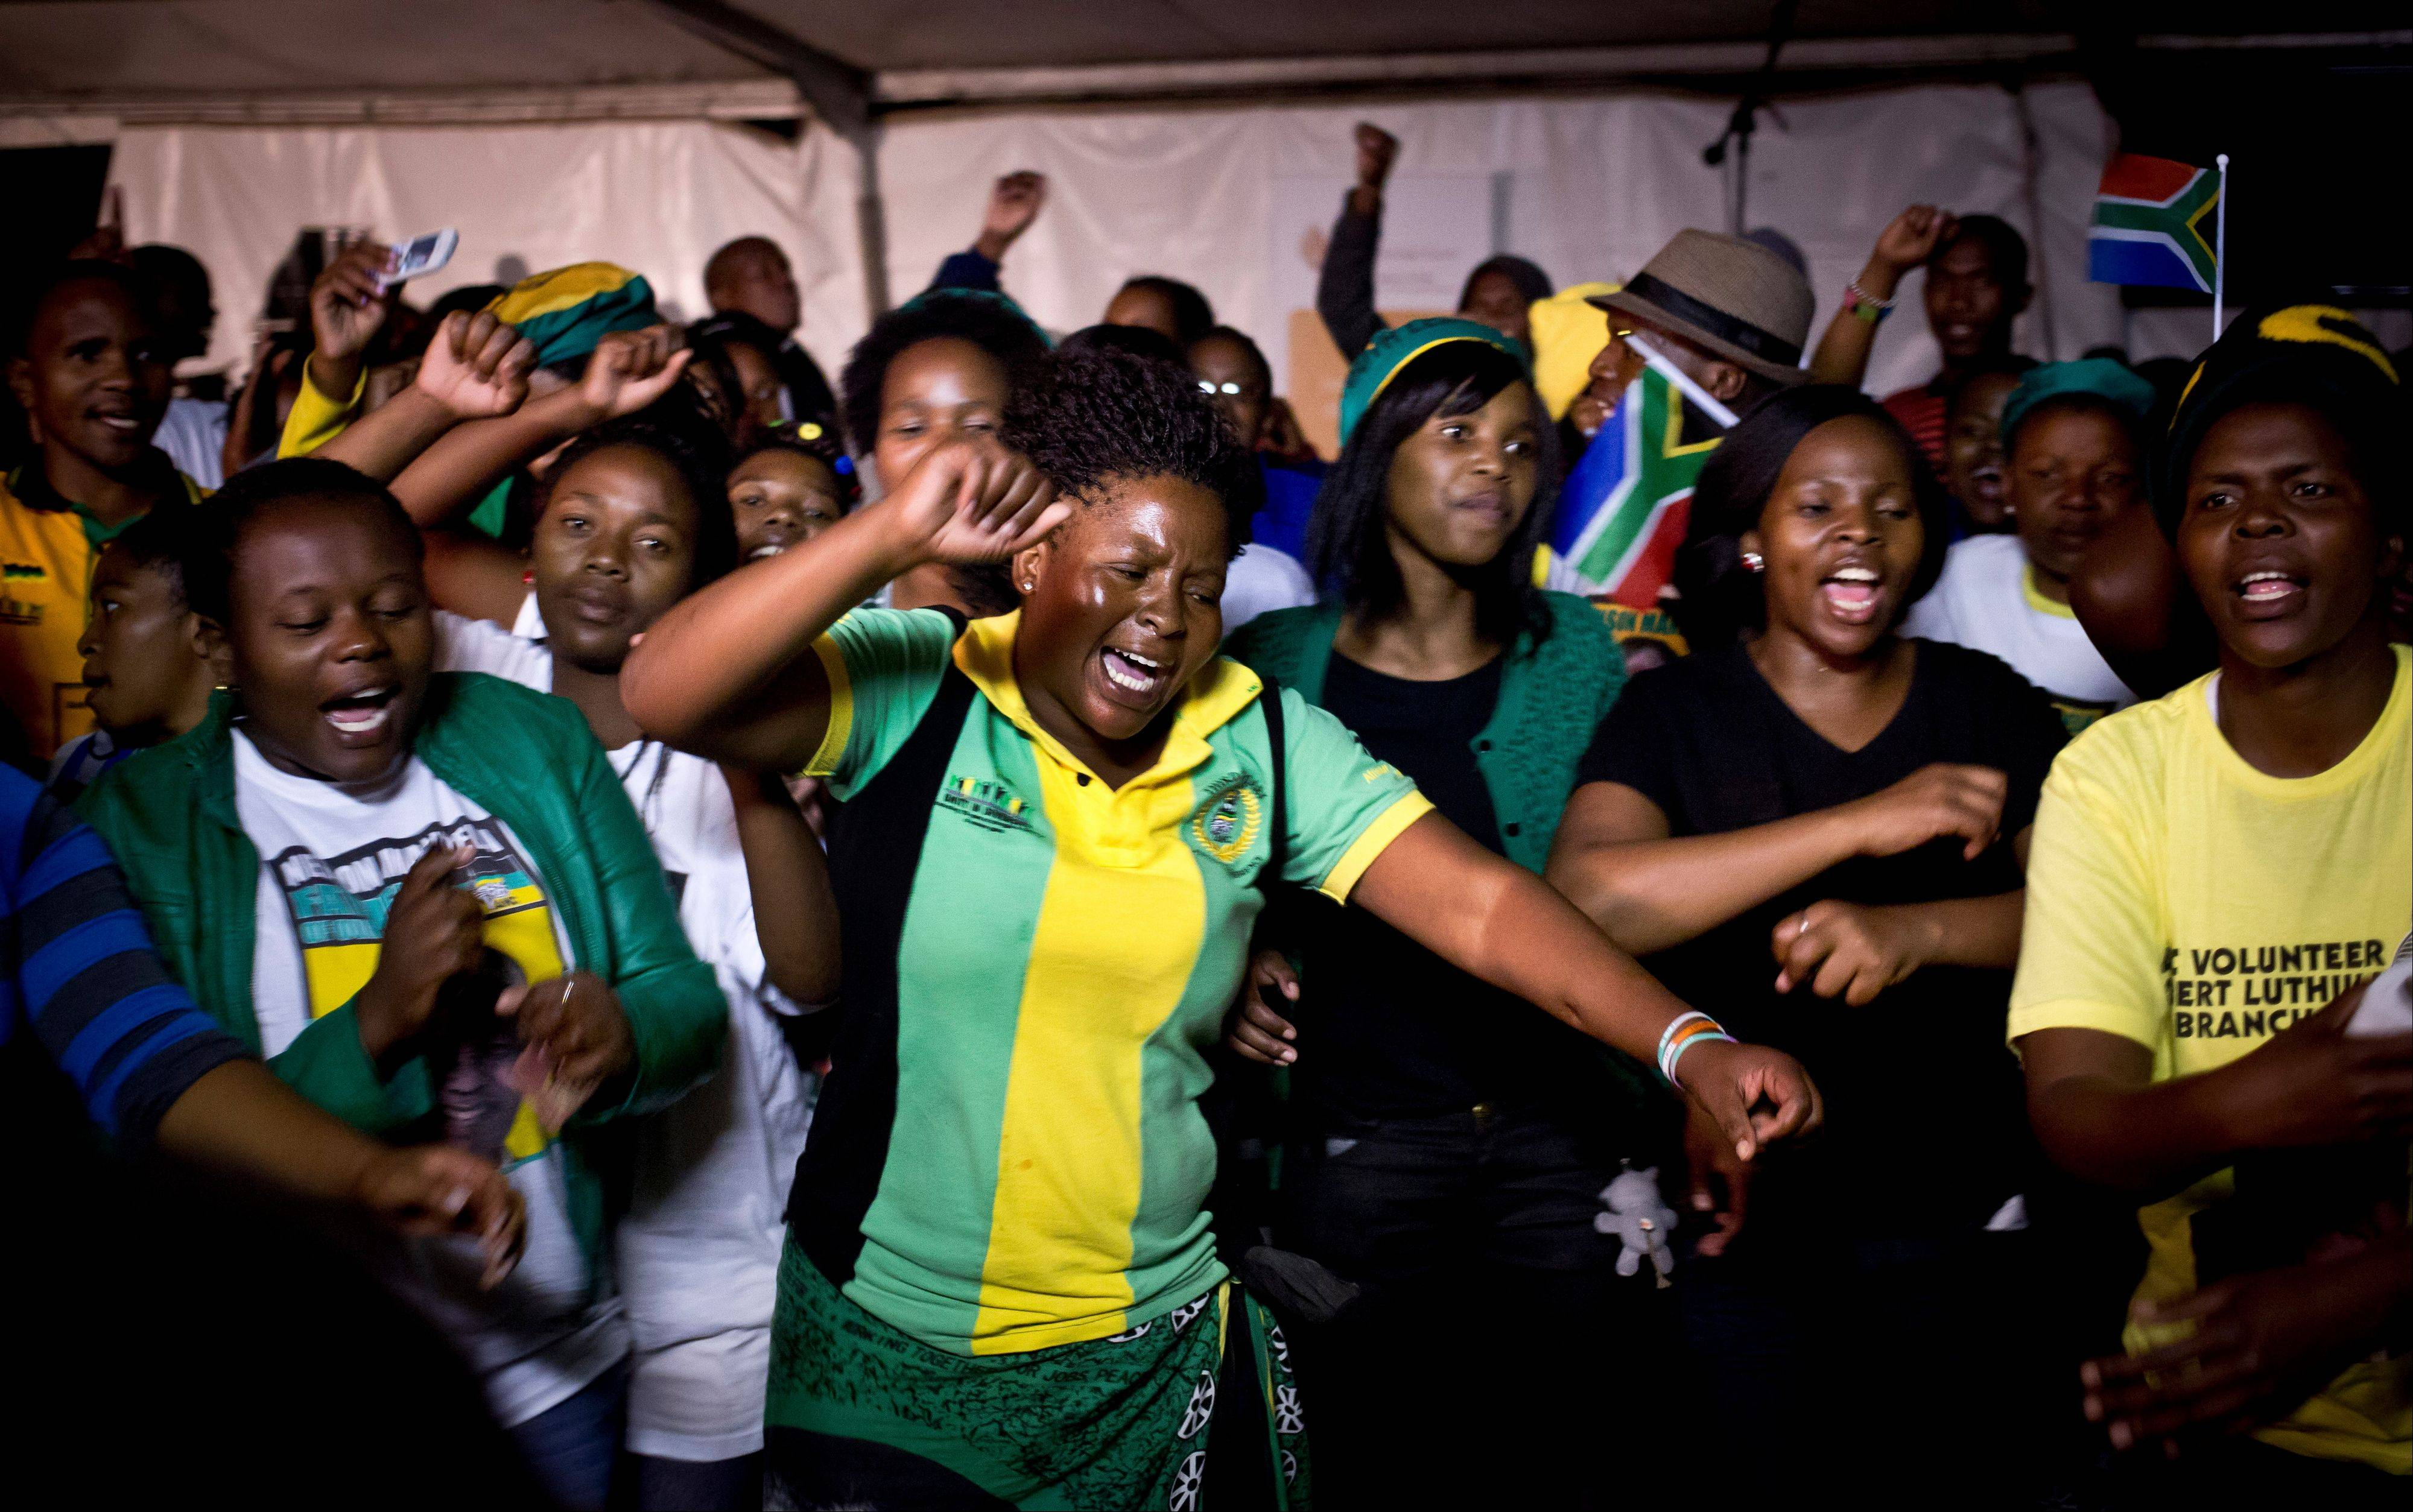 Youth members of the African National Congress dance, pray and sing songs honoring Nelson Mandela, at a nighttime vigil Saturday at the Walter Sisulu University in Mthatha, South Africa.